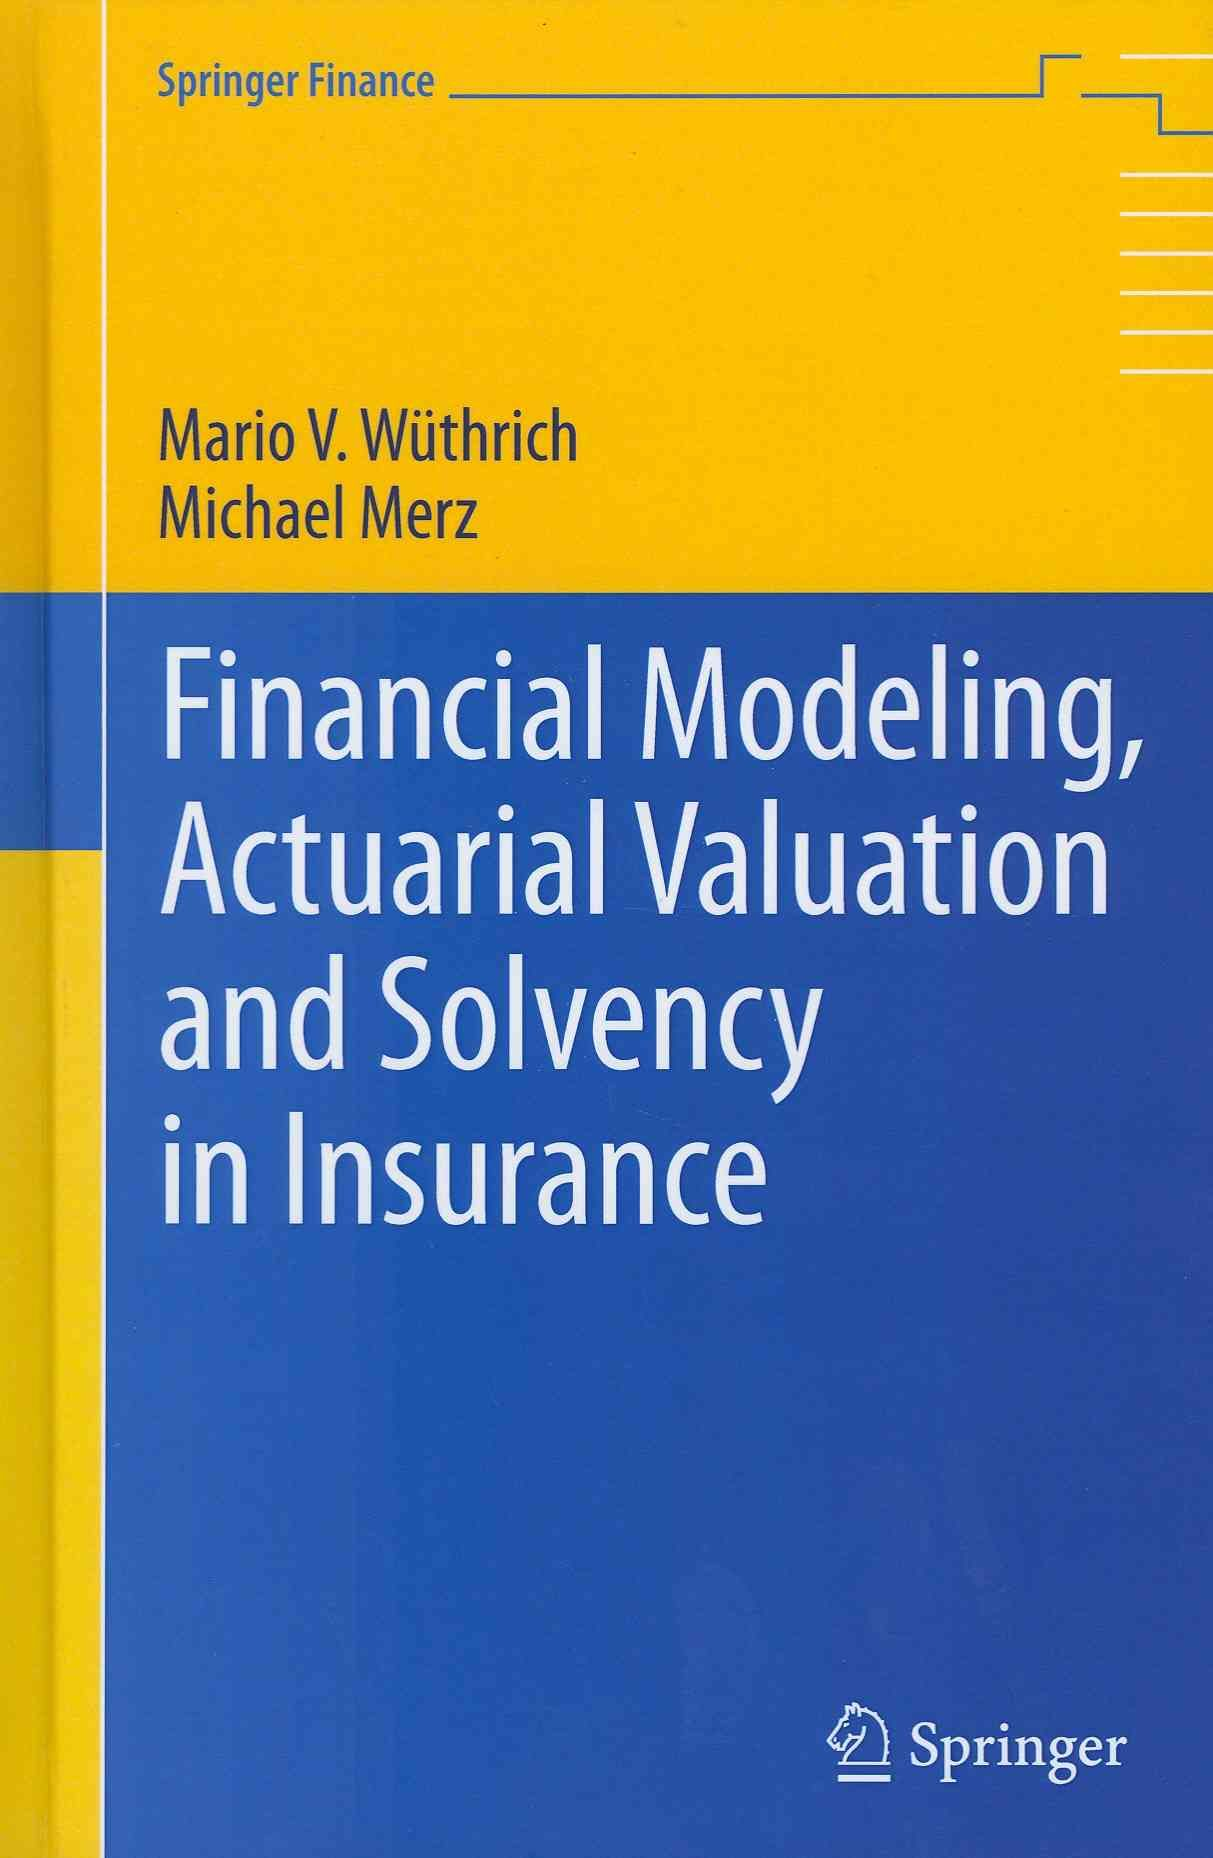 Financial Modeling Actuarial Valuation And Solvency In Insurance